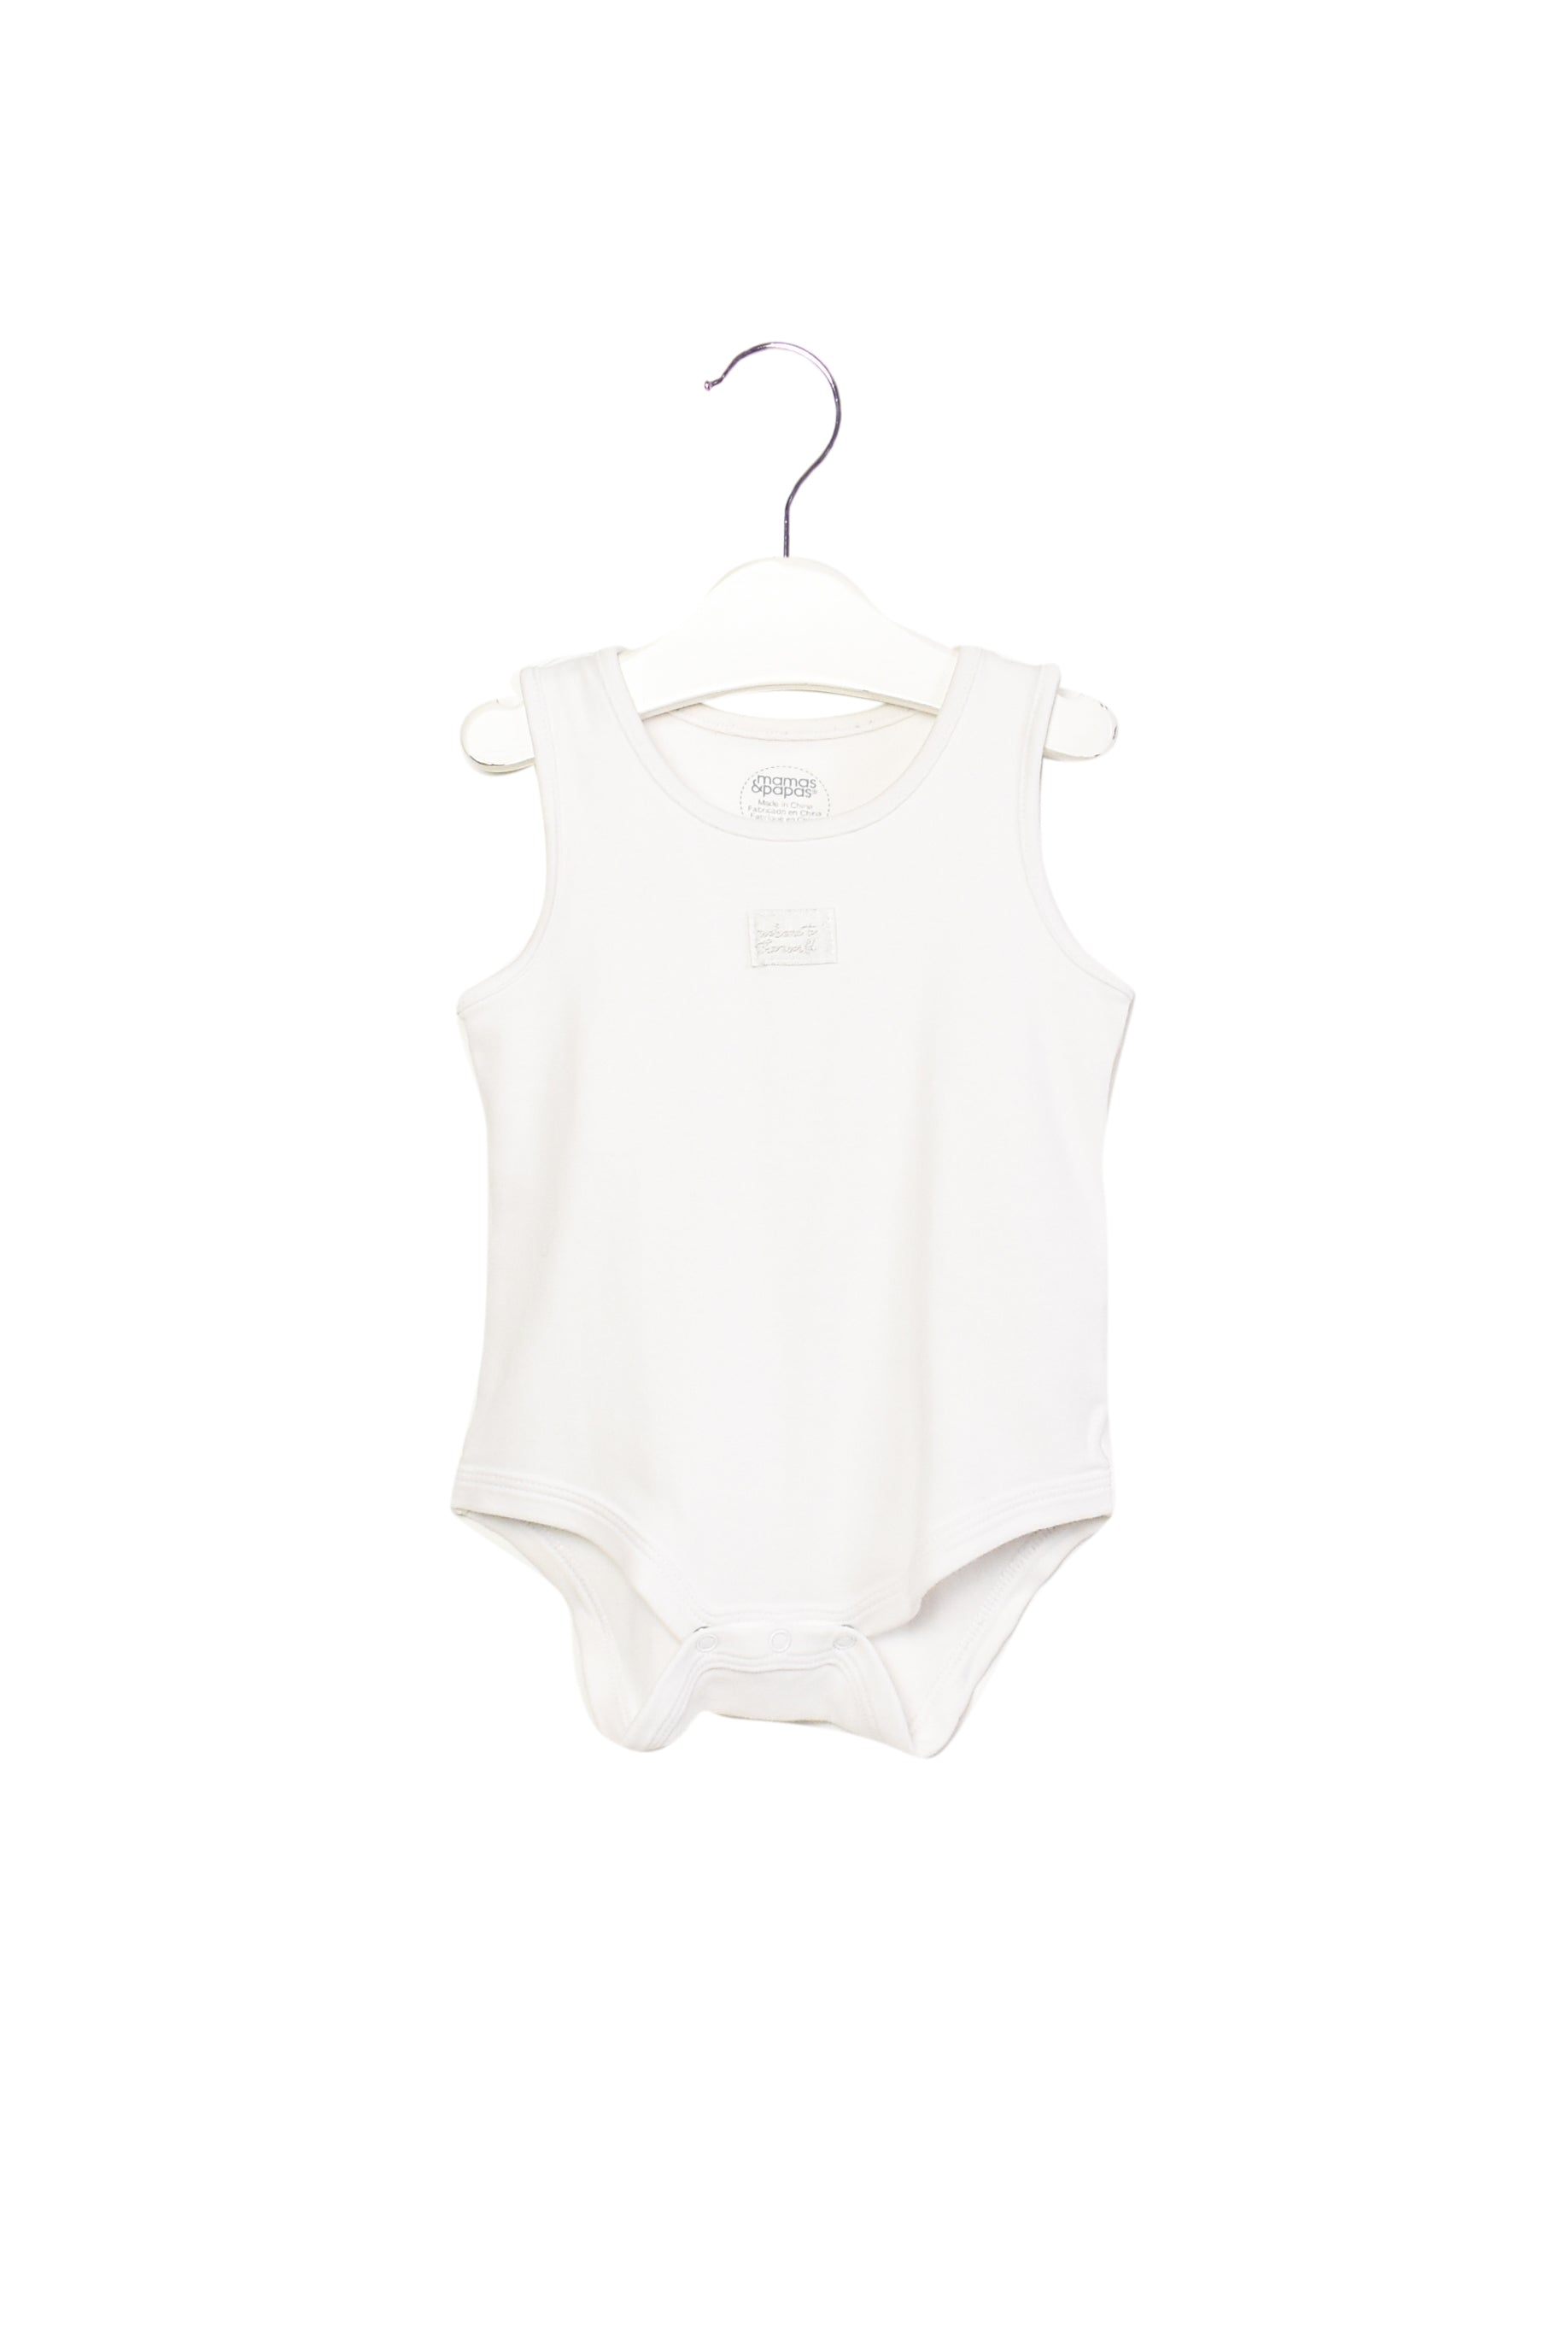 10013795 Mamas & Papas Baby ~ Bodysuit 9-12M at Retykle